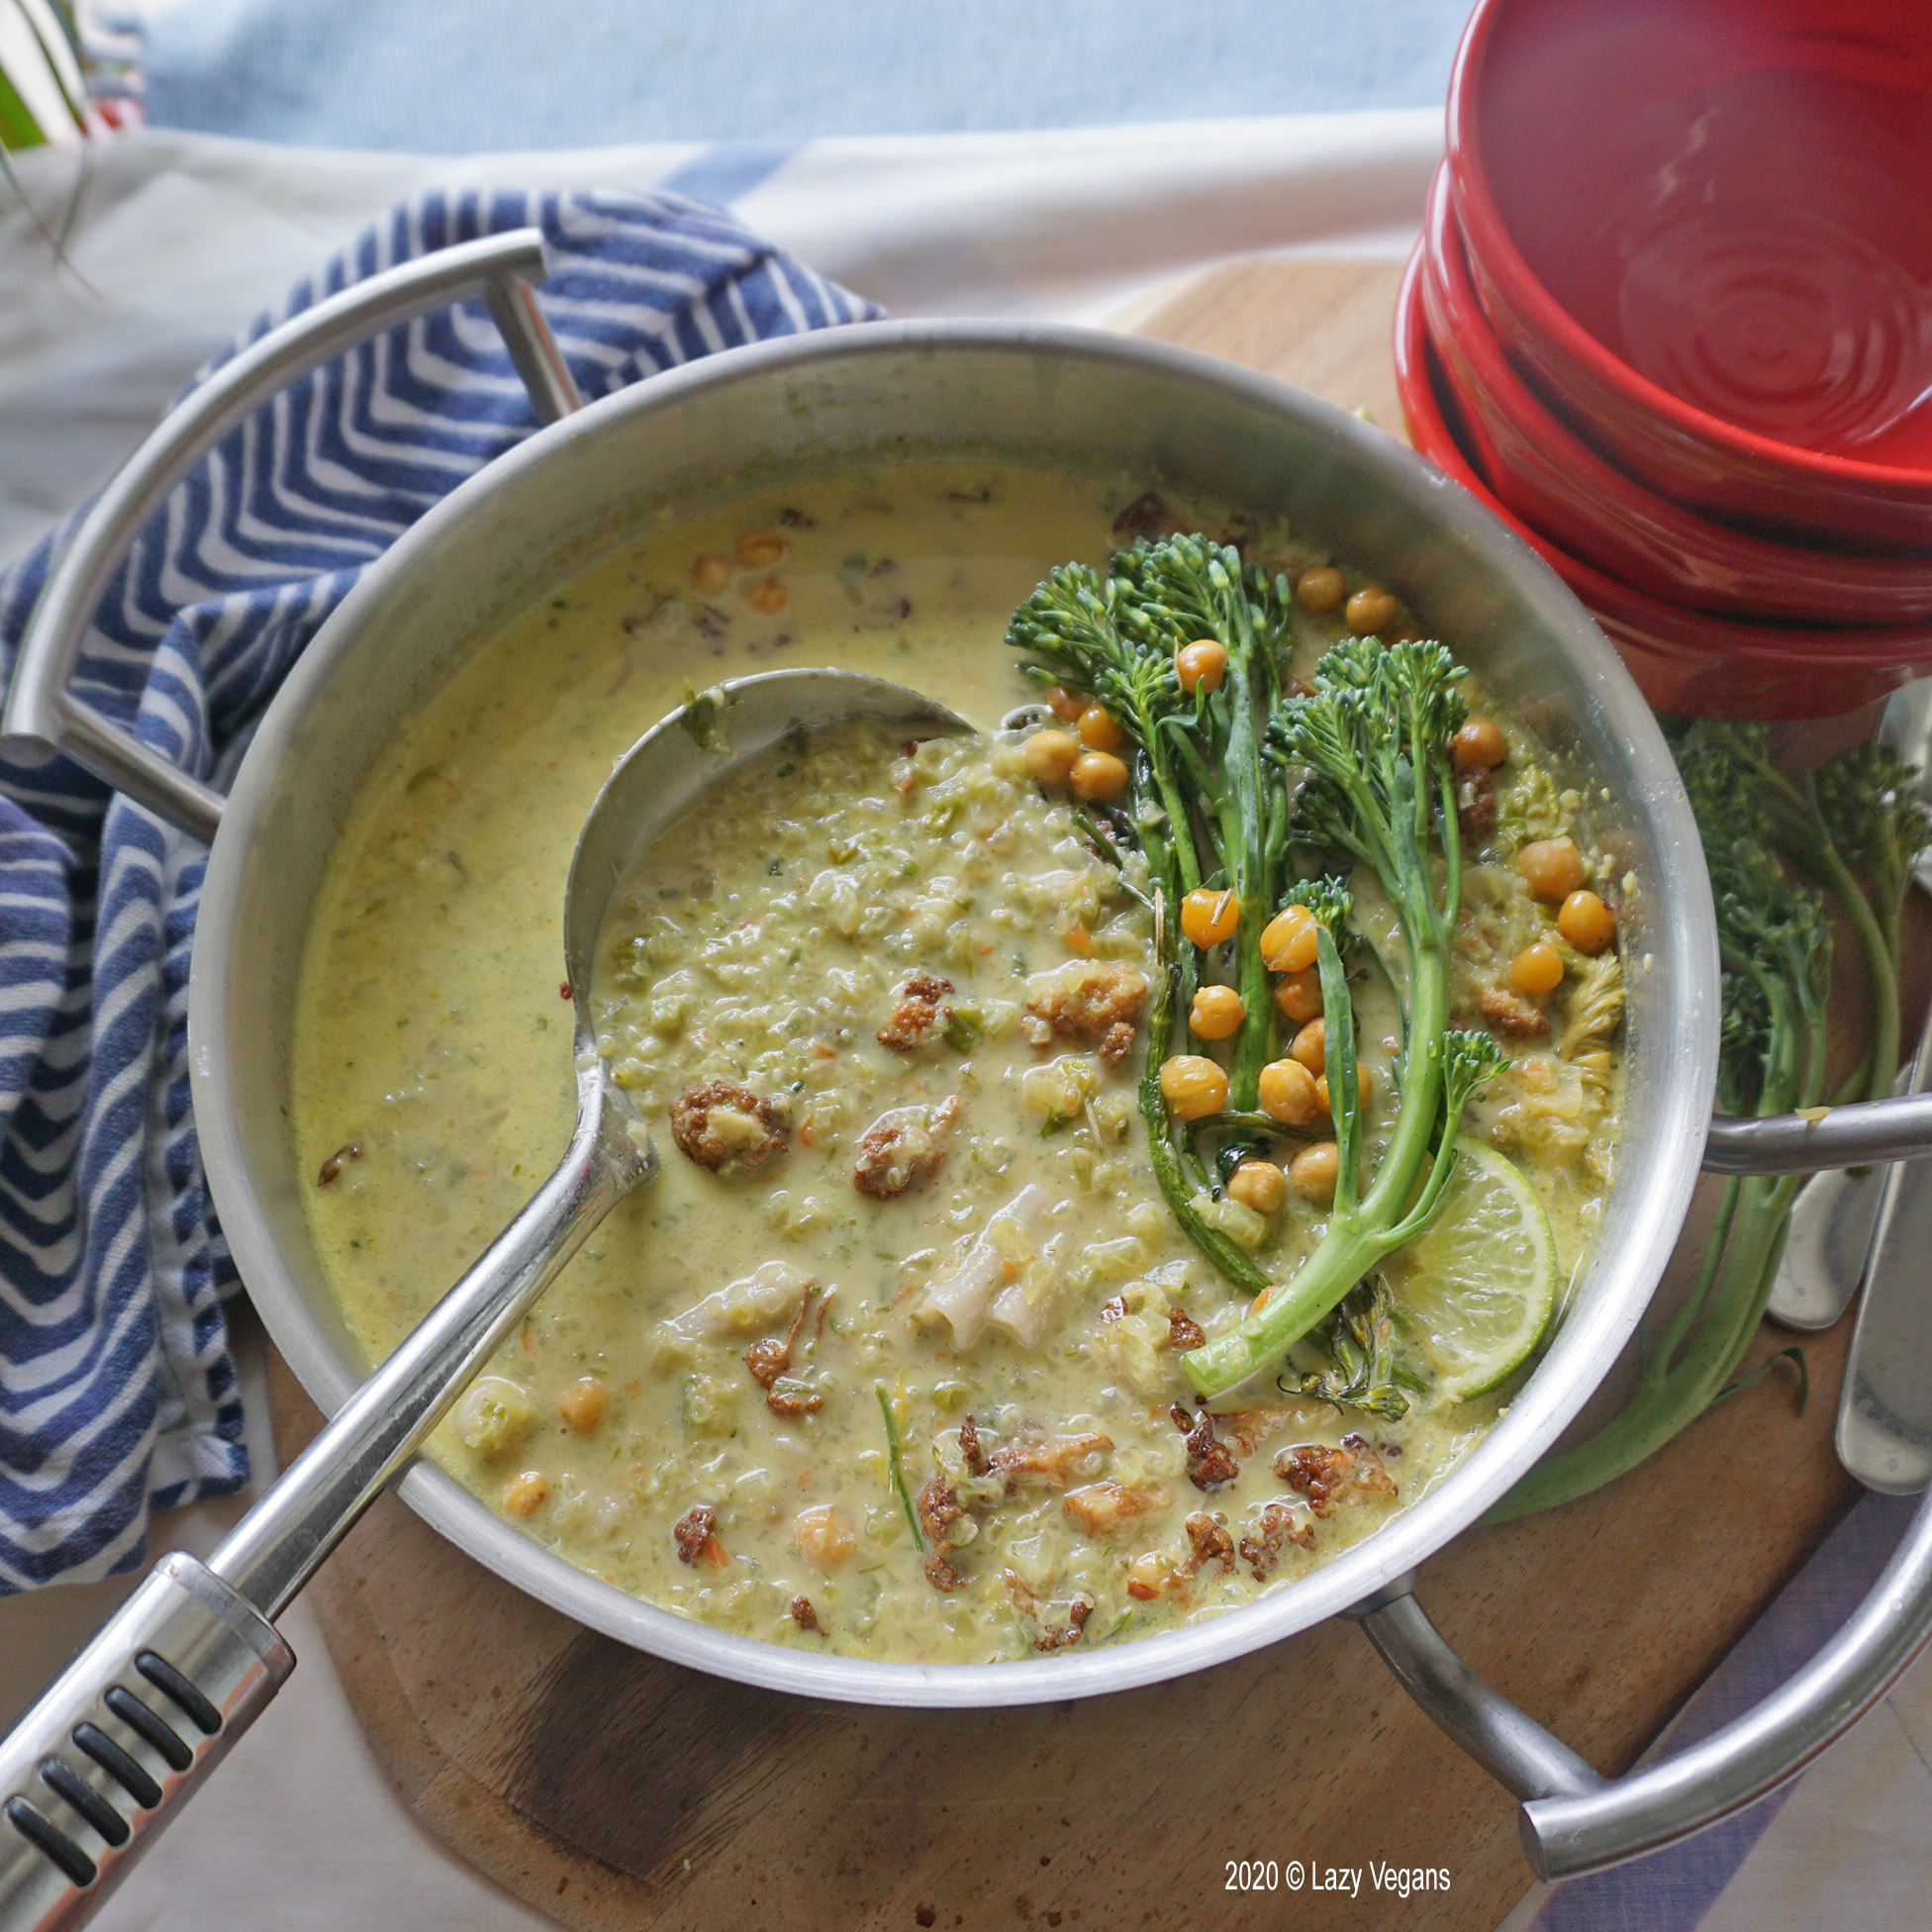 curried cream of celery soup with roasted broccolini, cauliflower and chickpeas